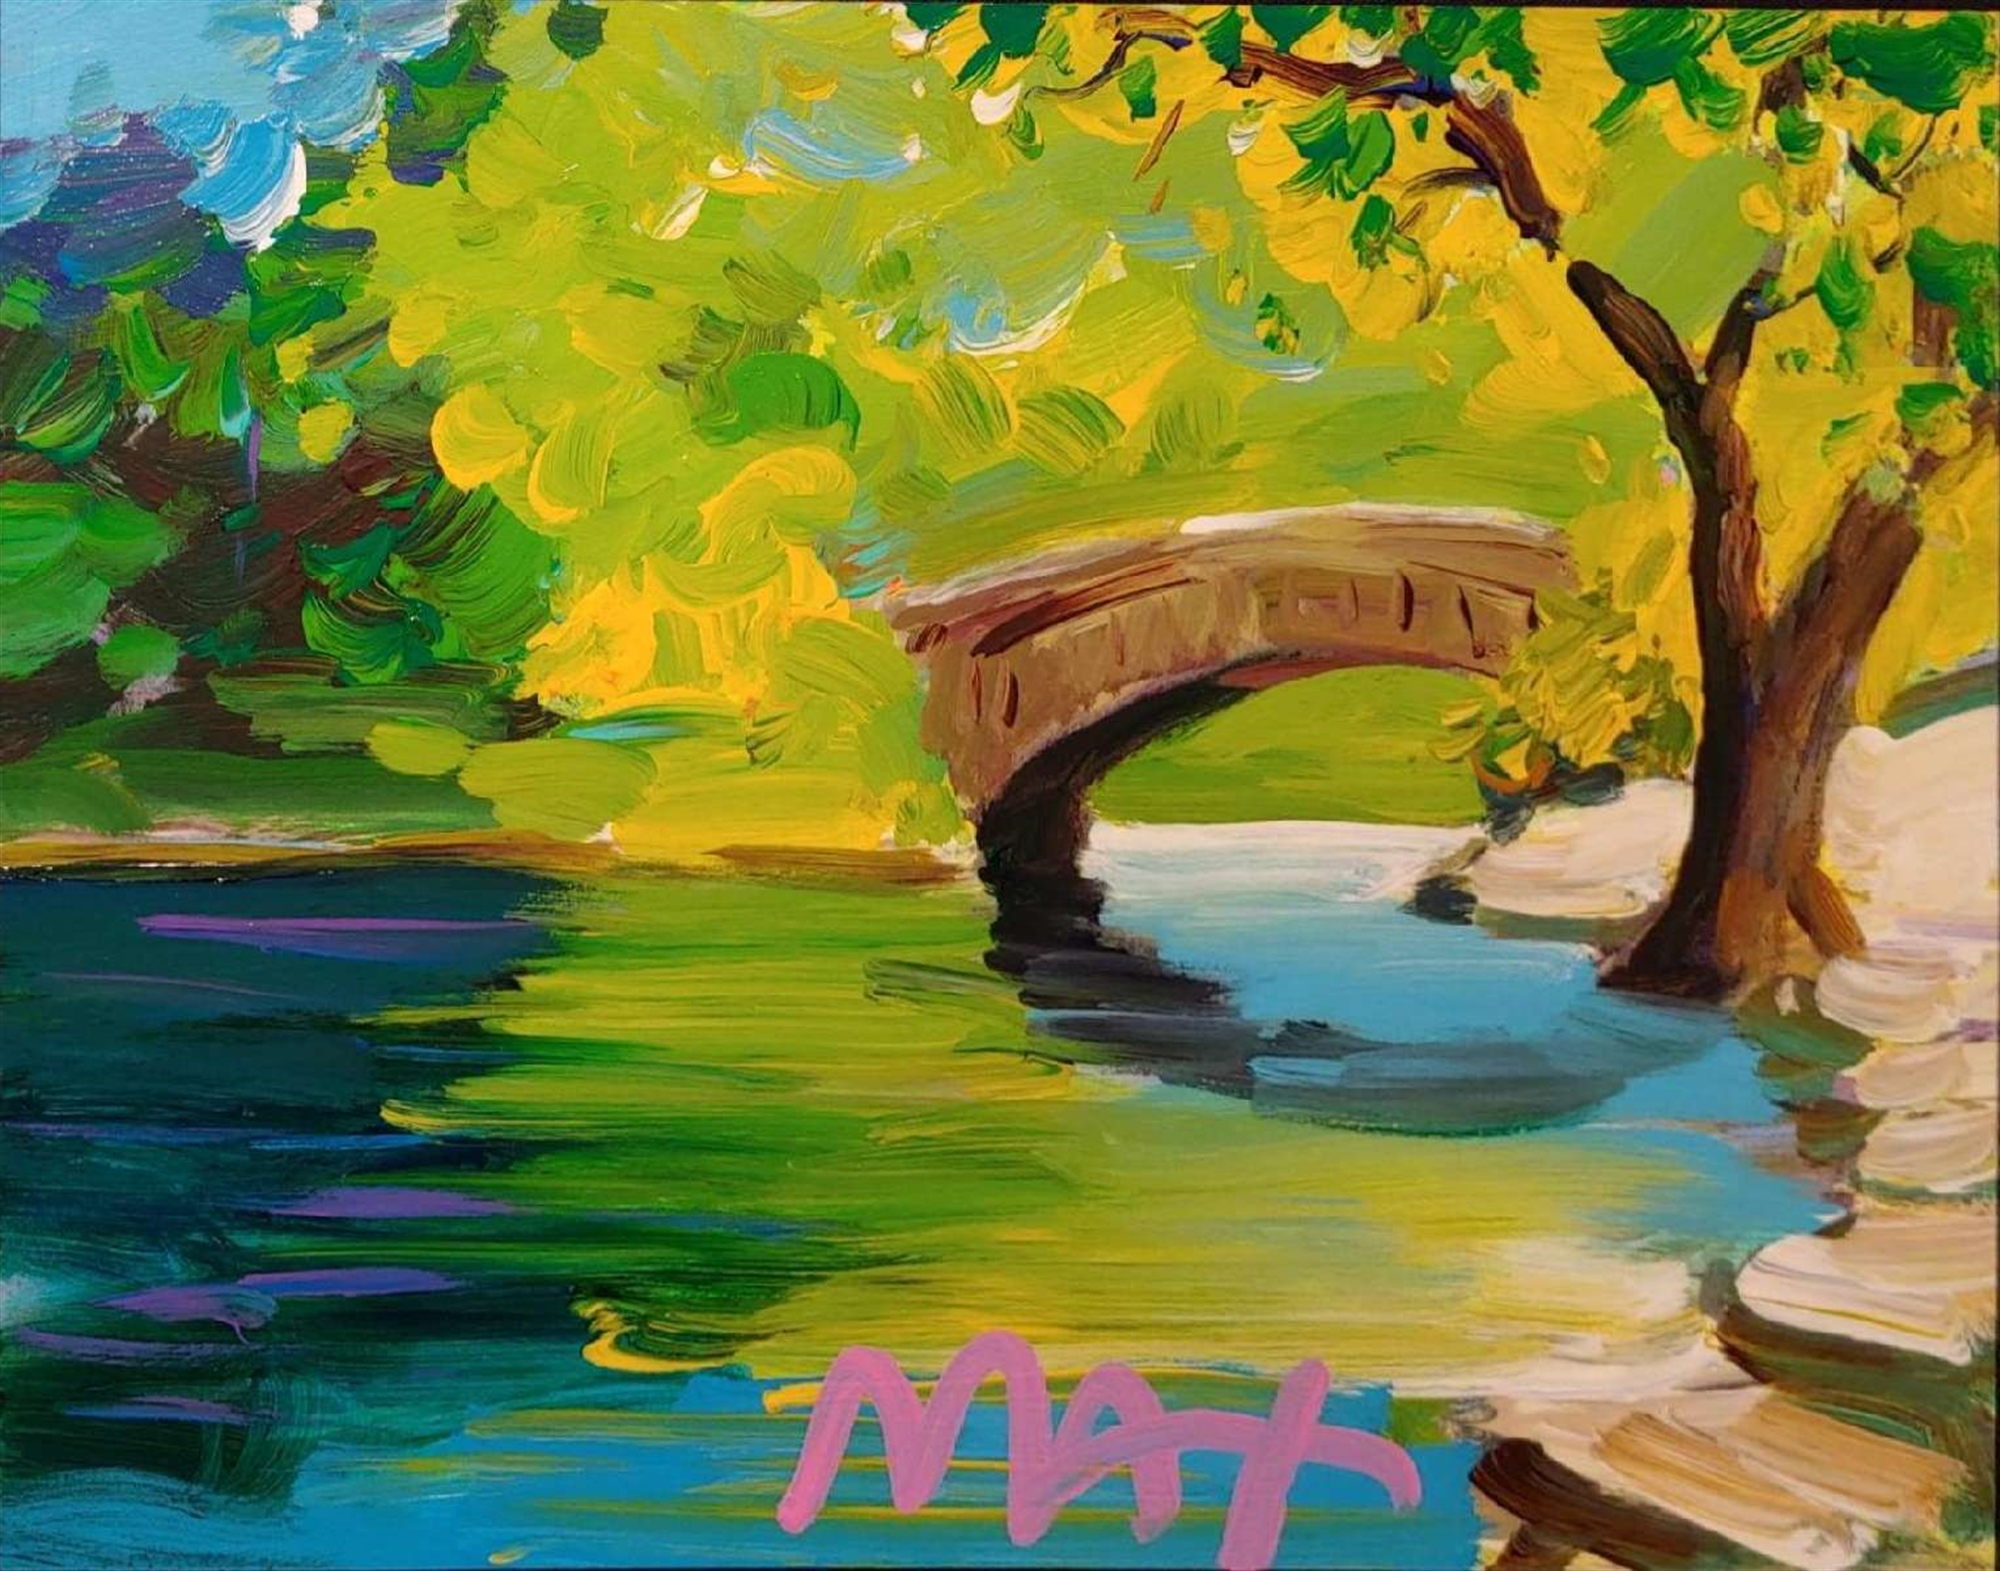 FOUR SEASONS II: SUMMER (CENTRAL PARK) by Peter Max